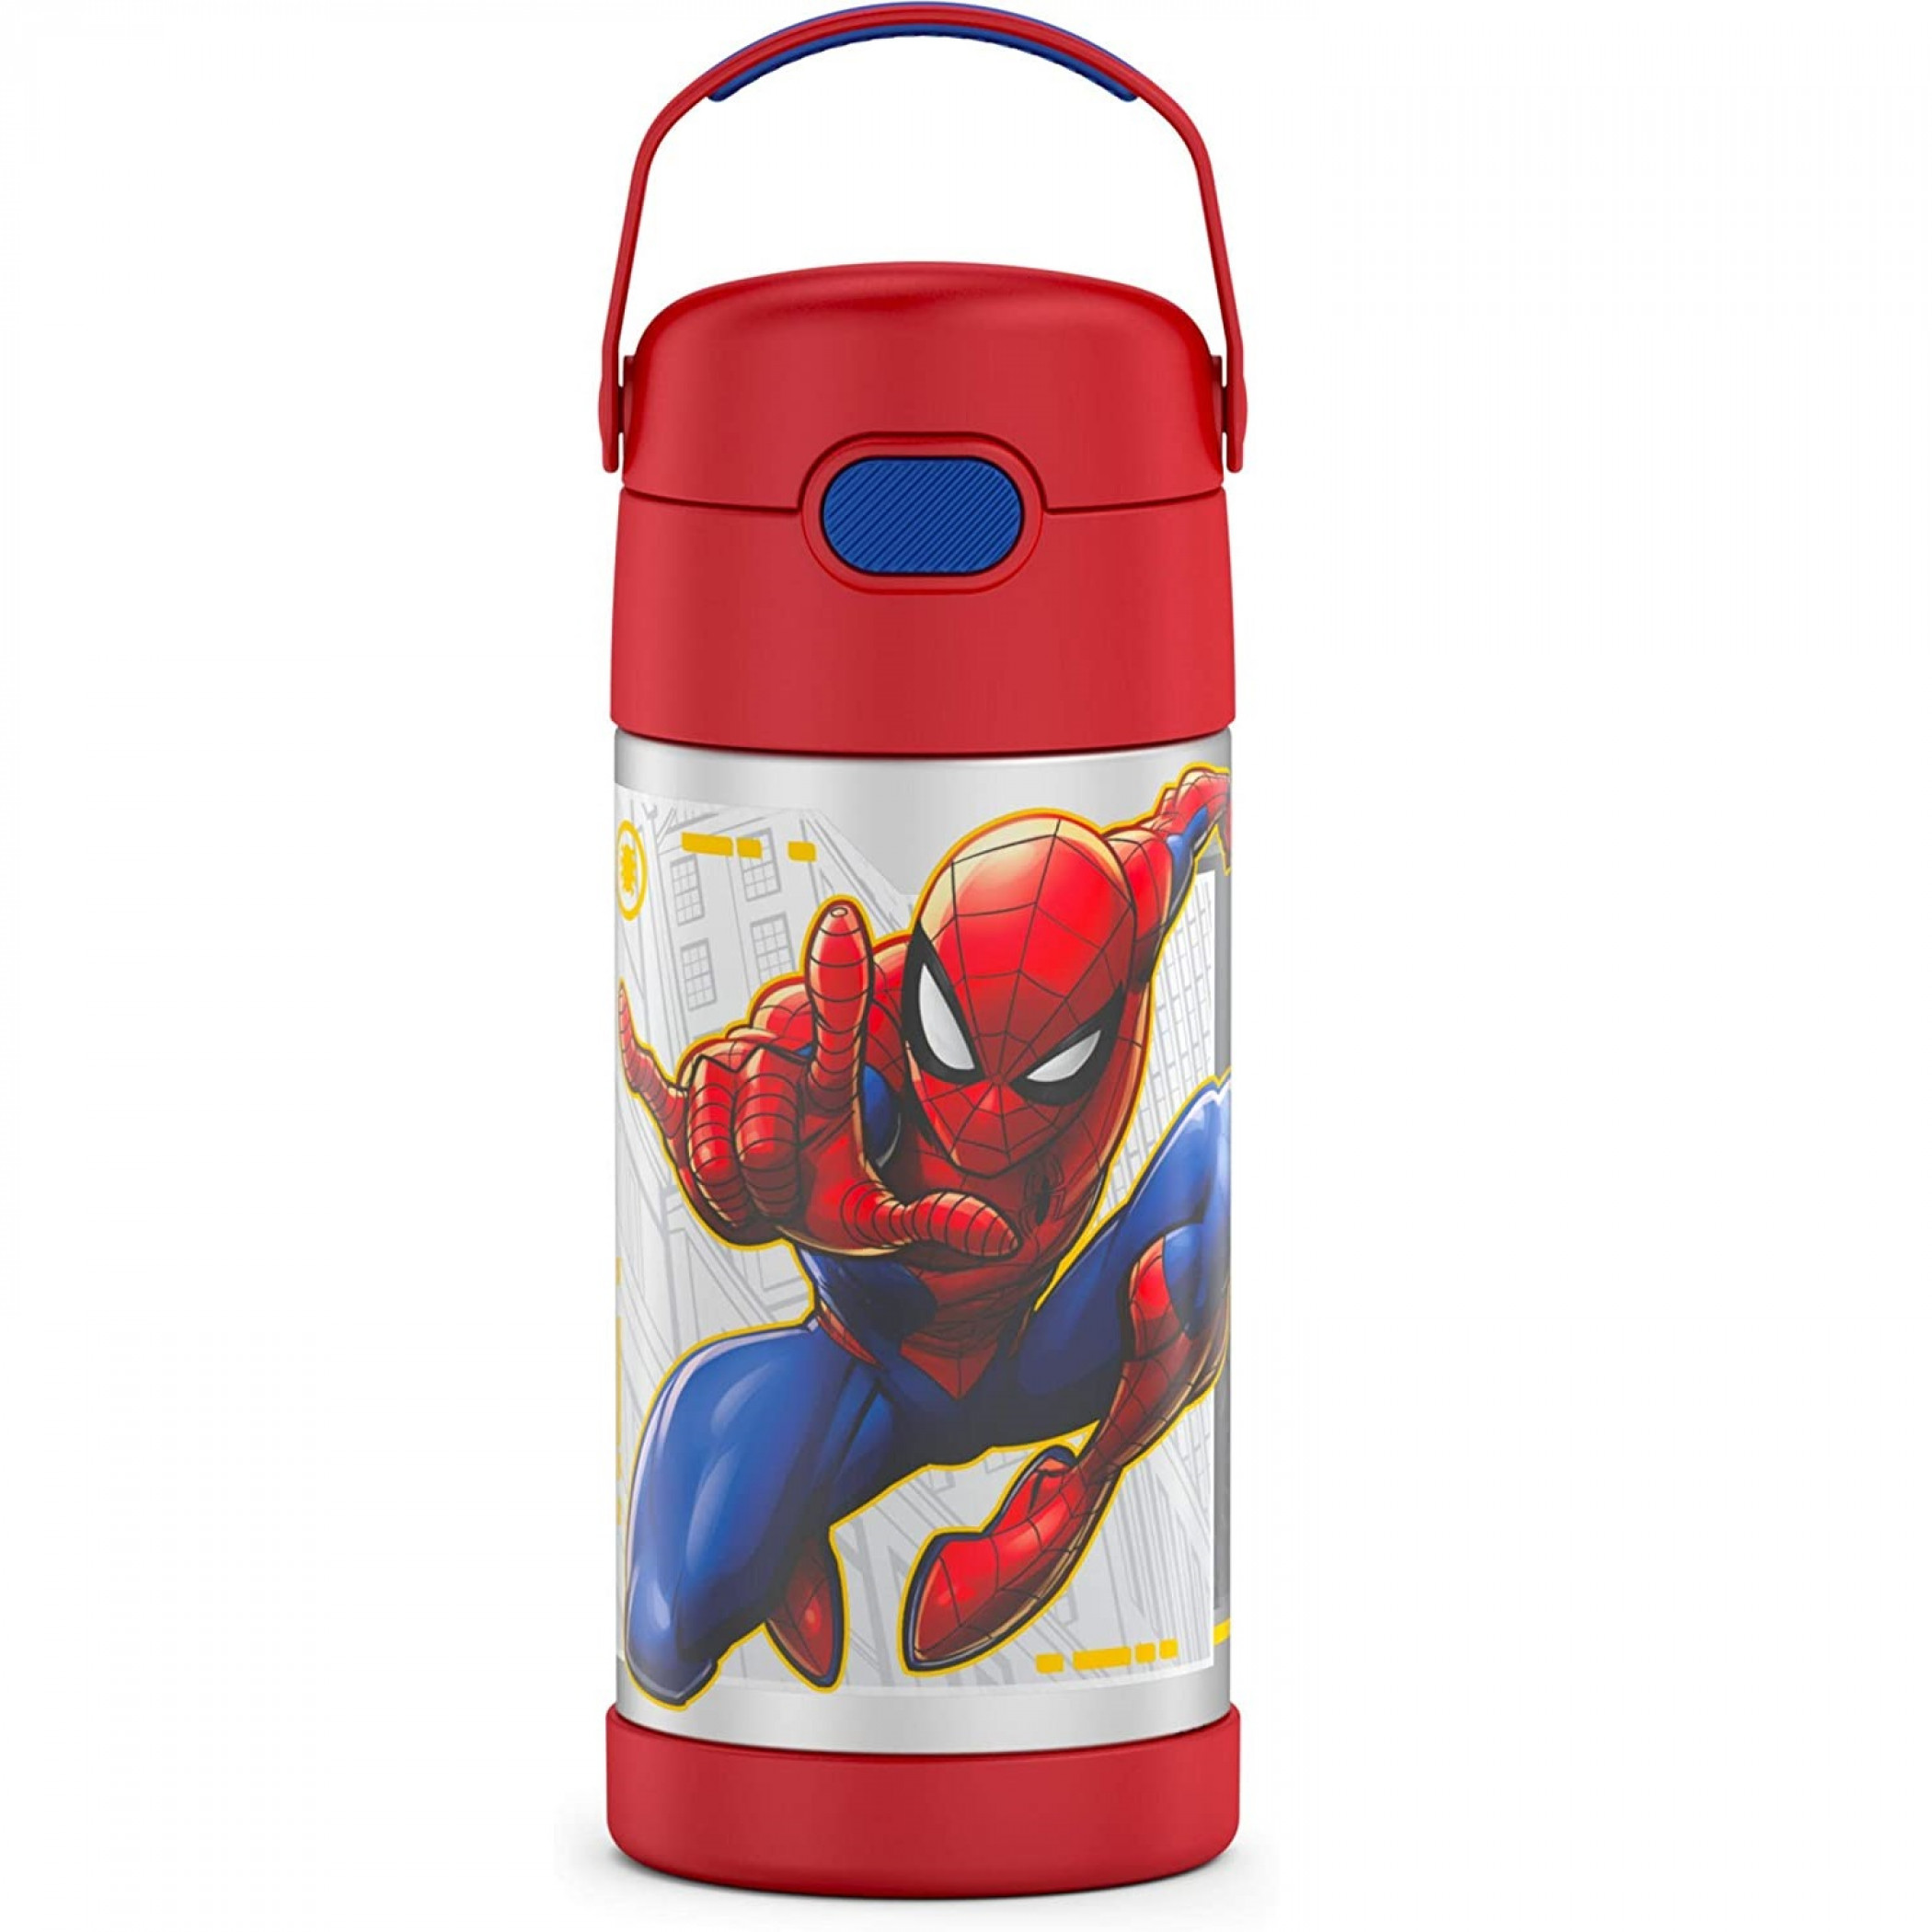 Spider-Man Swinging Stainless Steel 12oz Thermos Funtainer